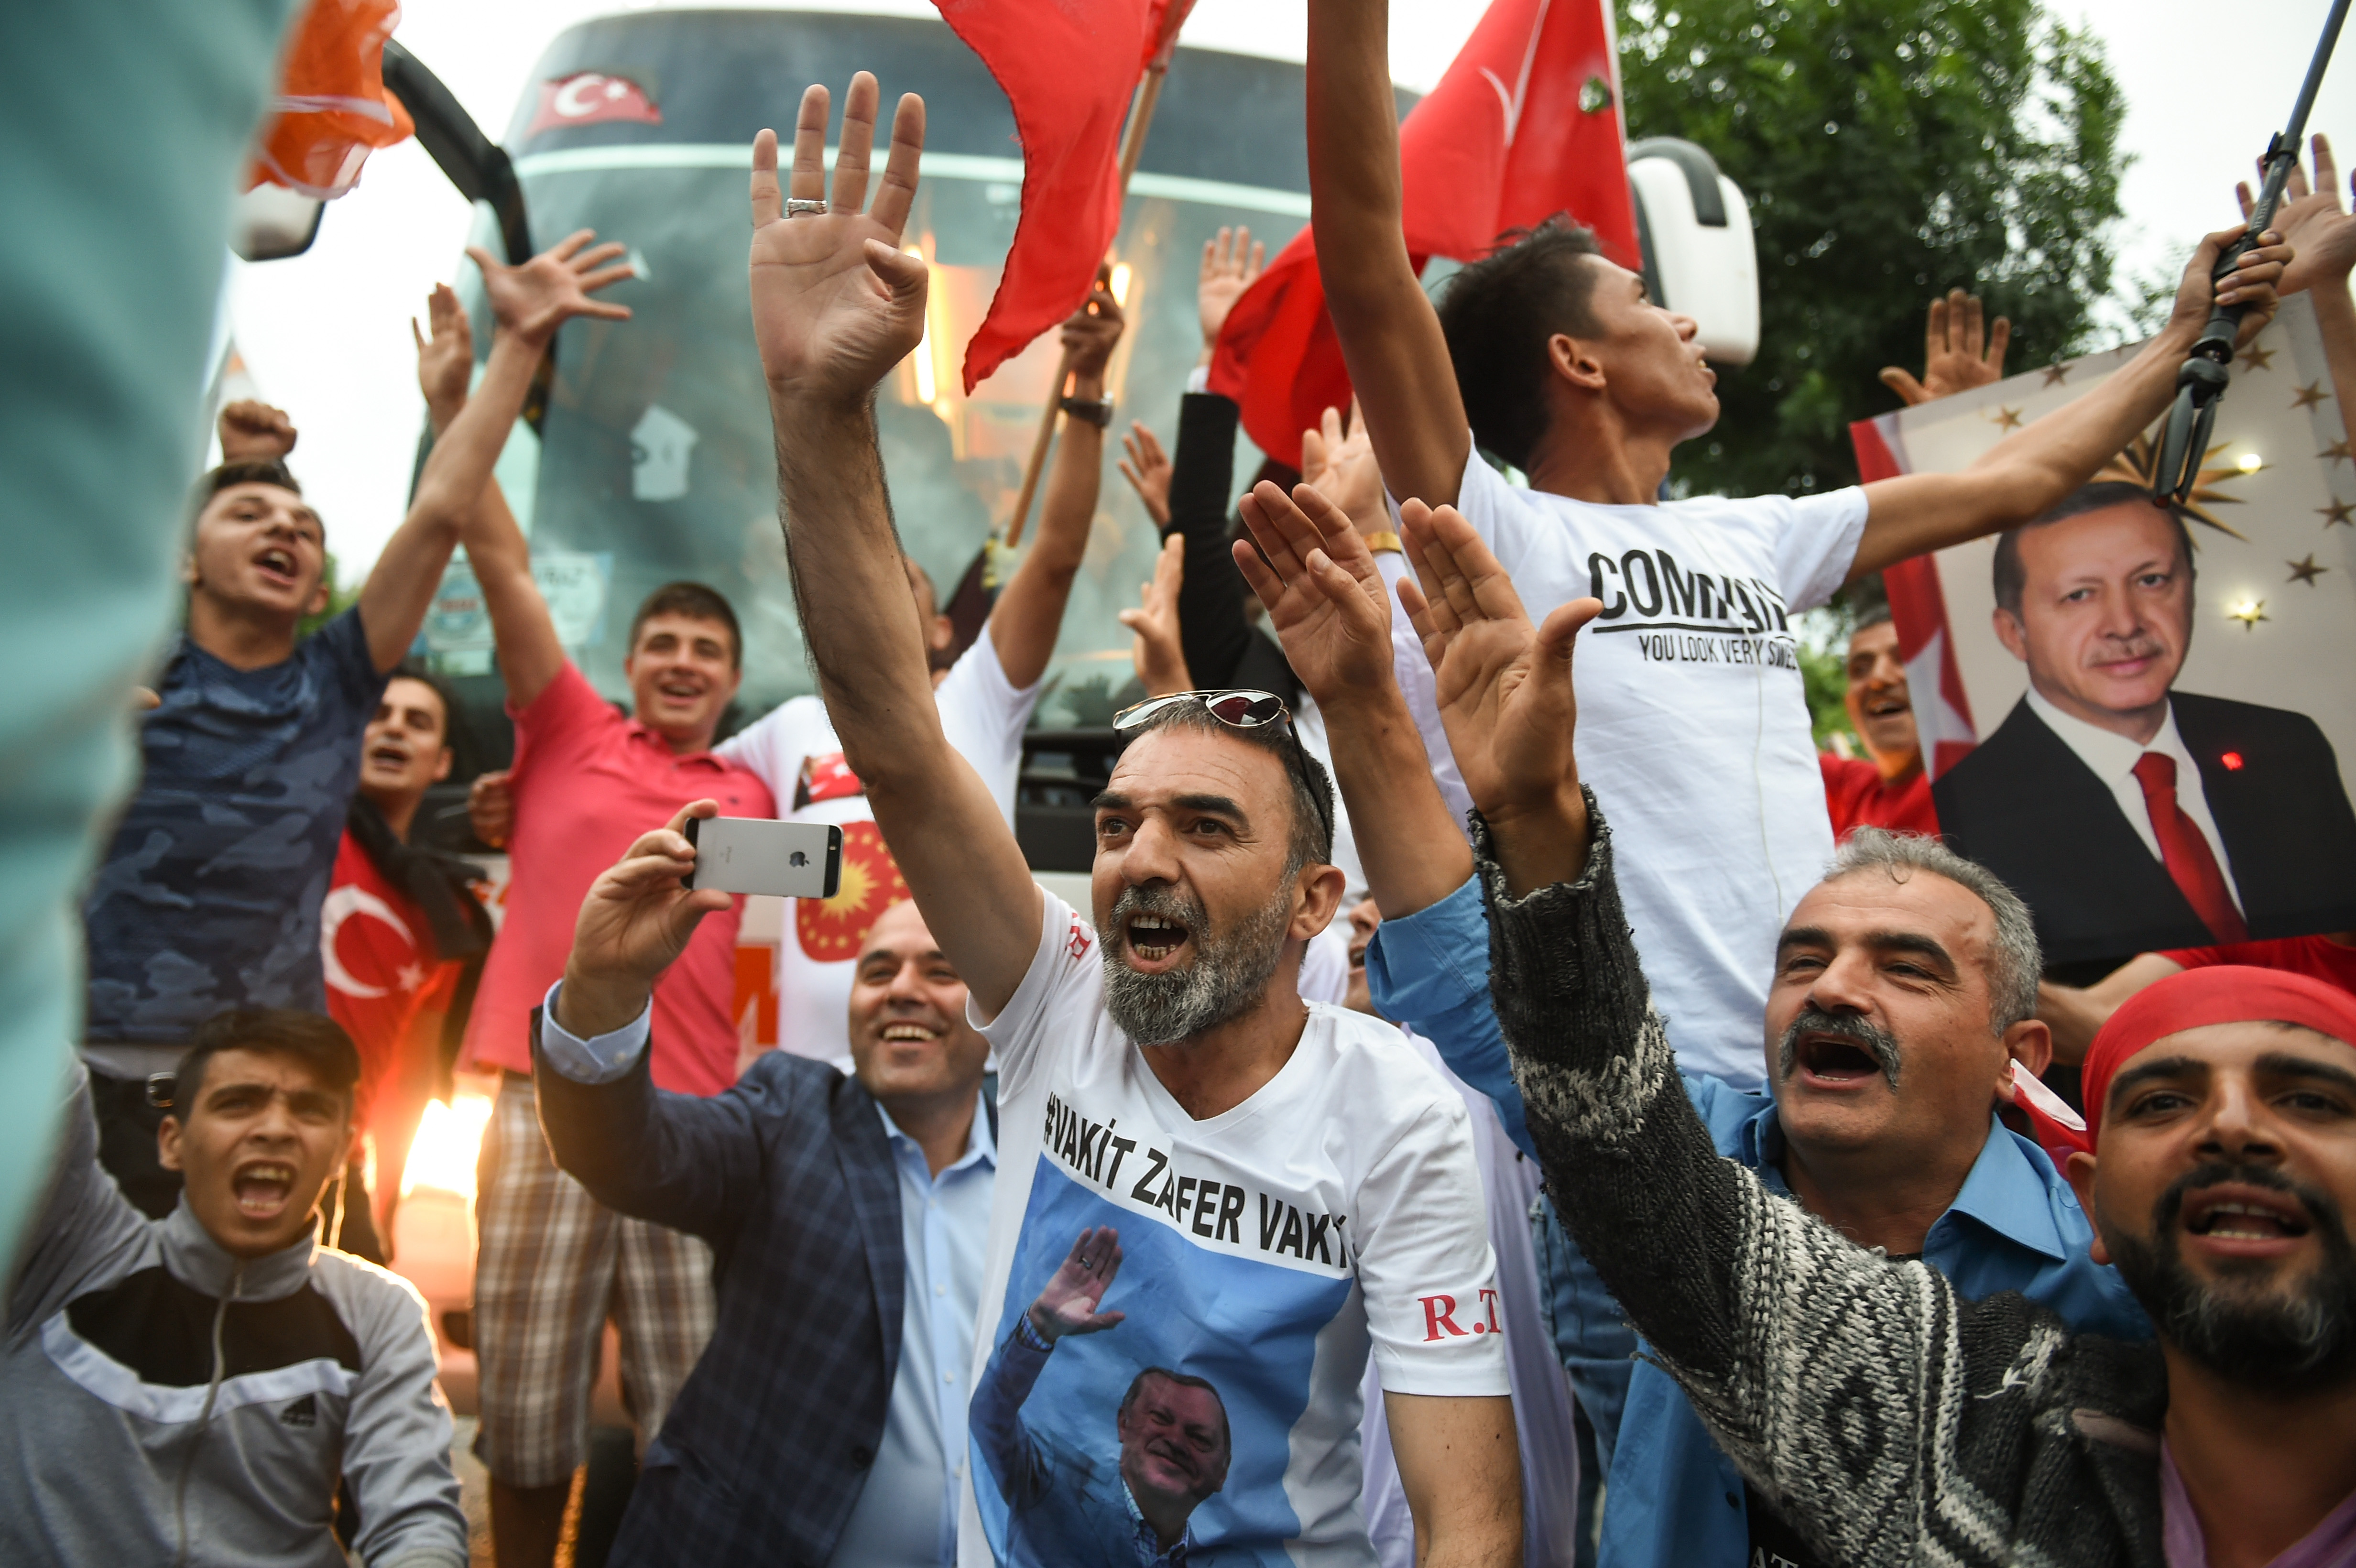 President Recep Tayyip Erdogan's supporters celebrate outside the AK party headquarters on June 24, 2018 in Istanbul, Turkey